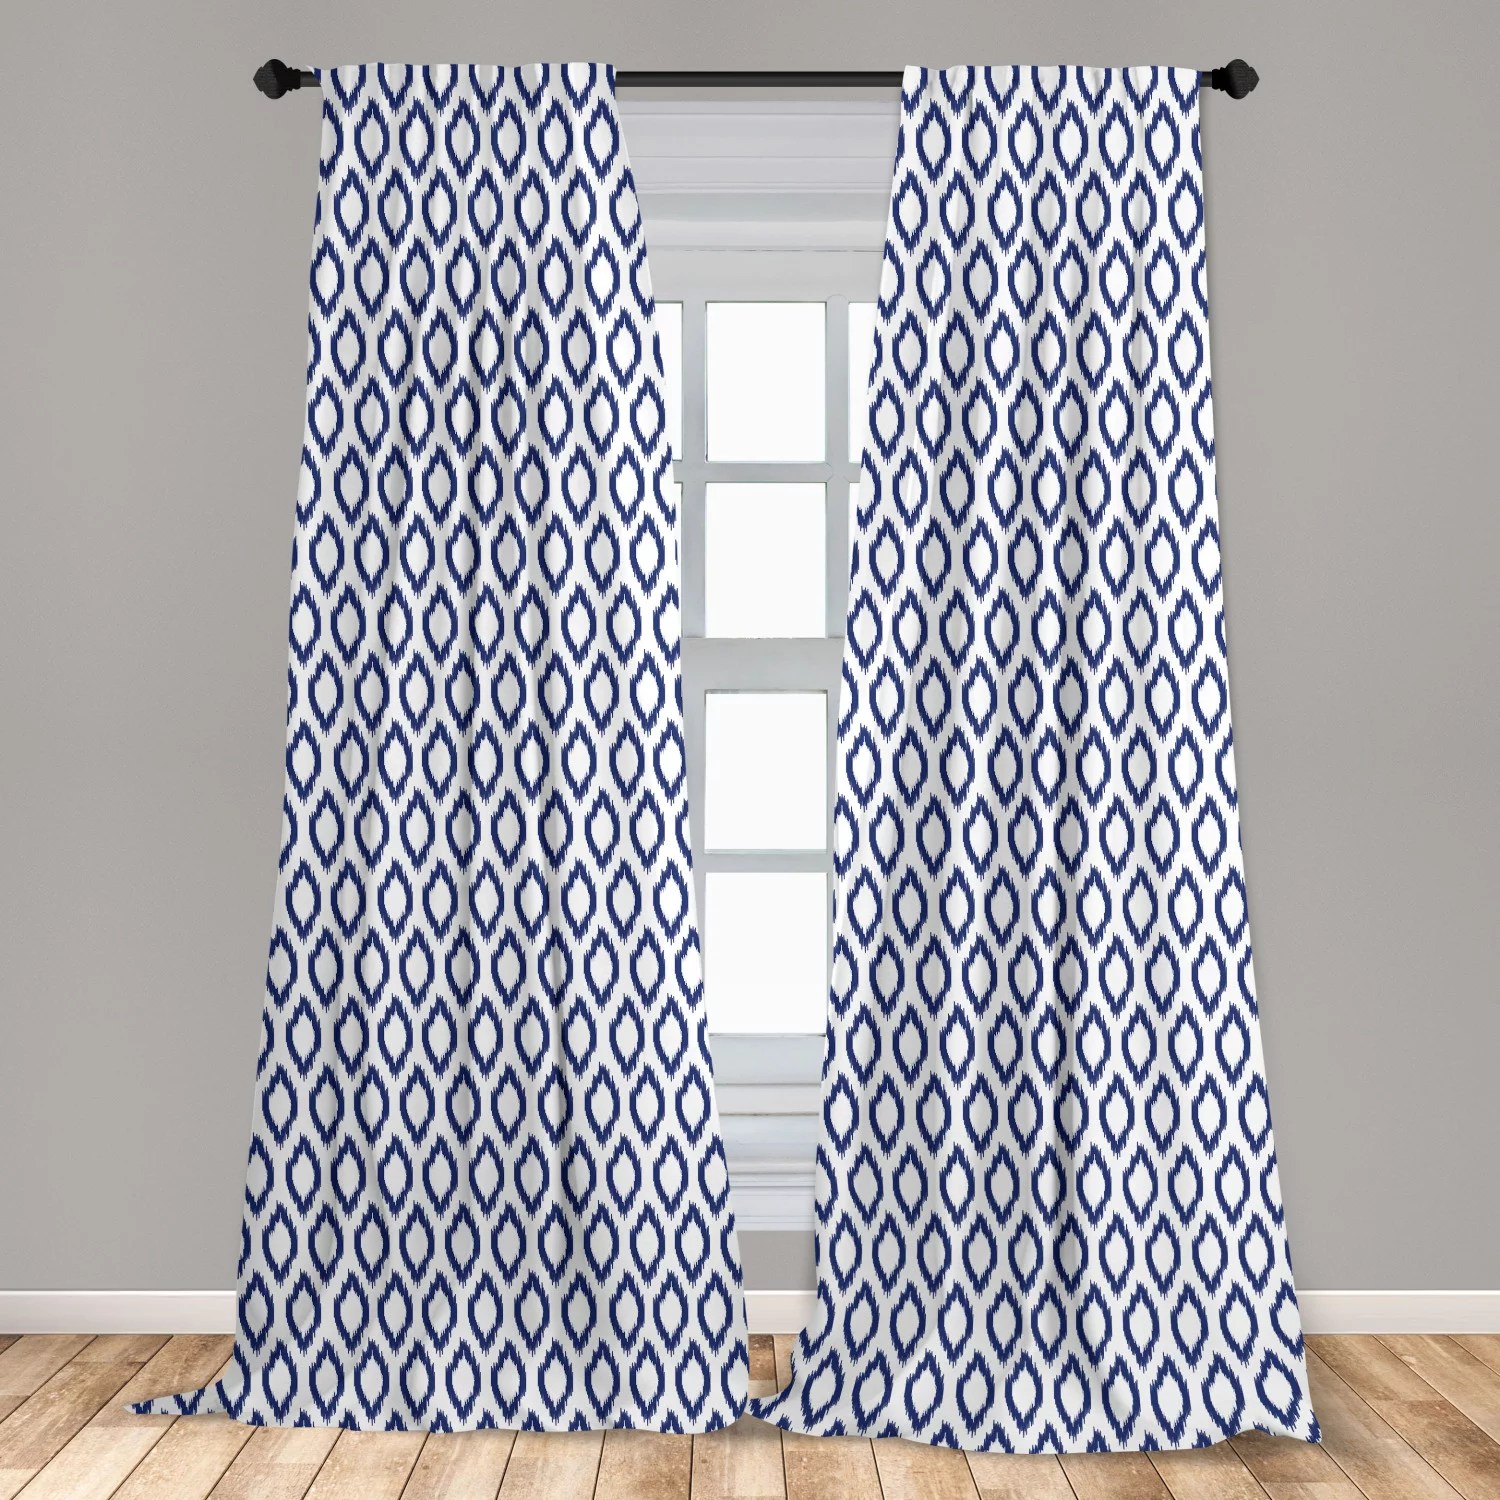 ikat curtains 2 panels set eastern ornament in blue exotic art elements curves simple design window drapes for living room bedroom navy blue white